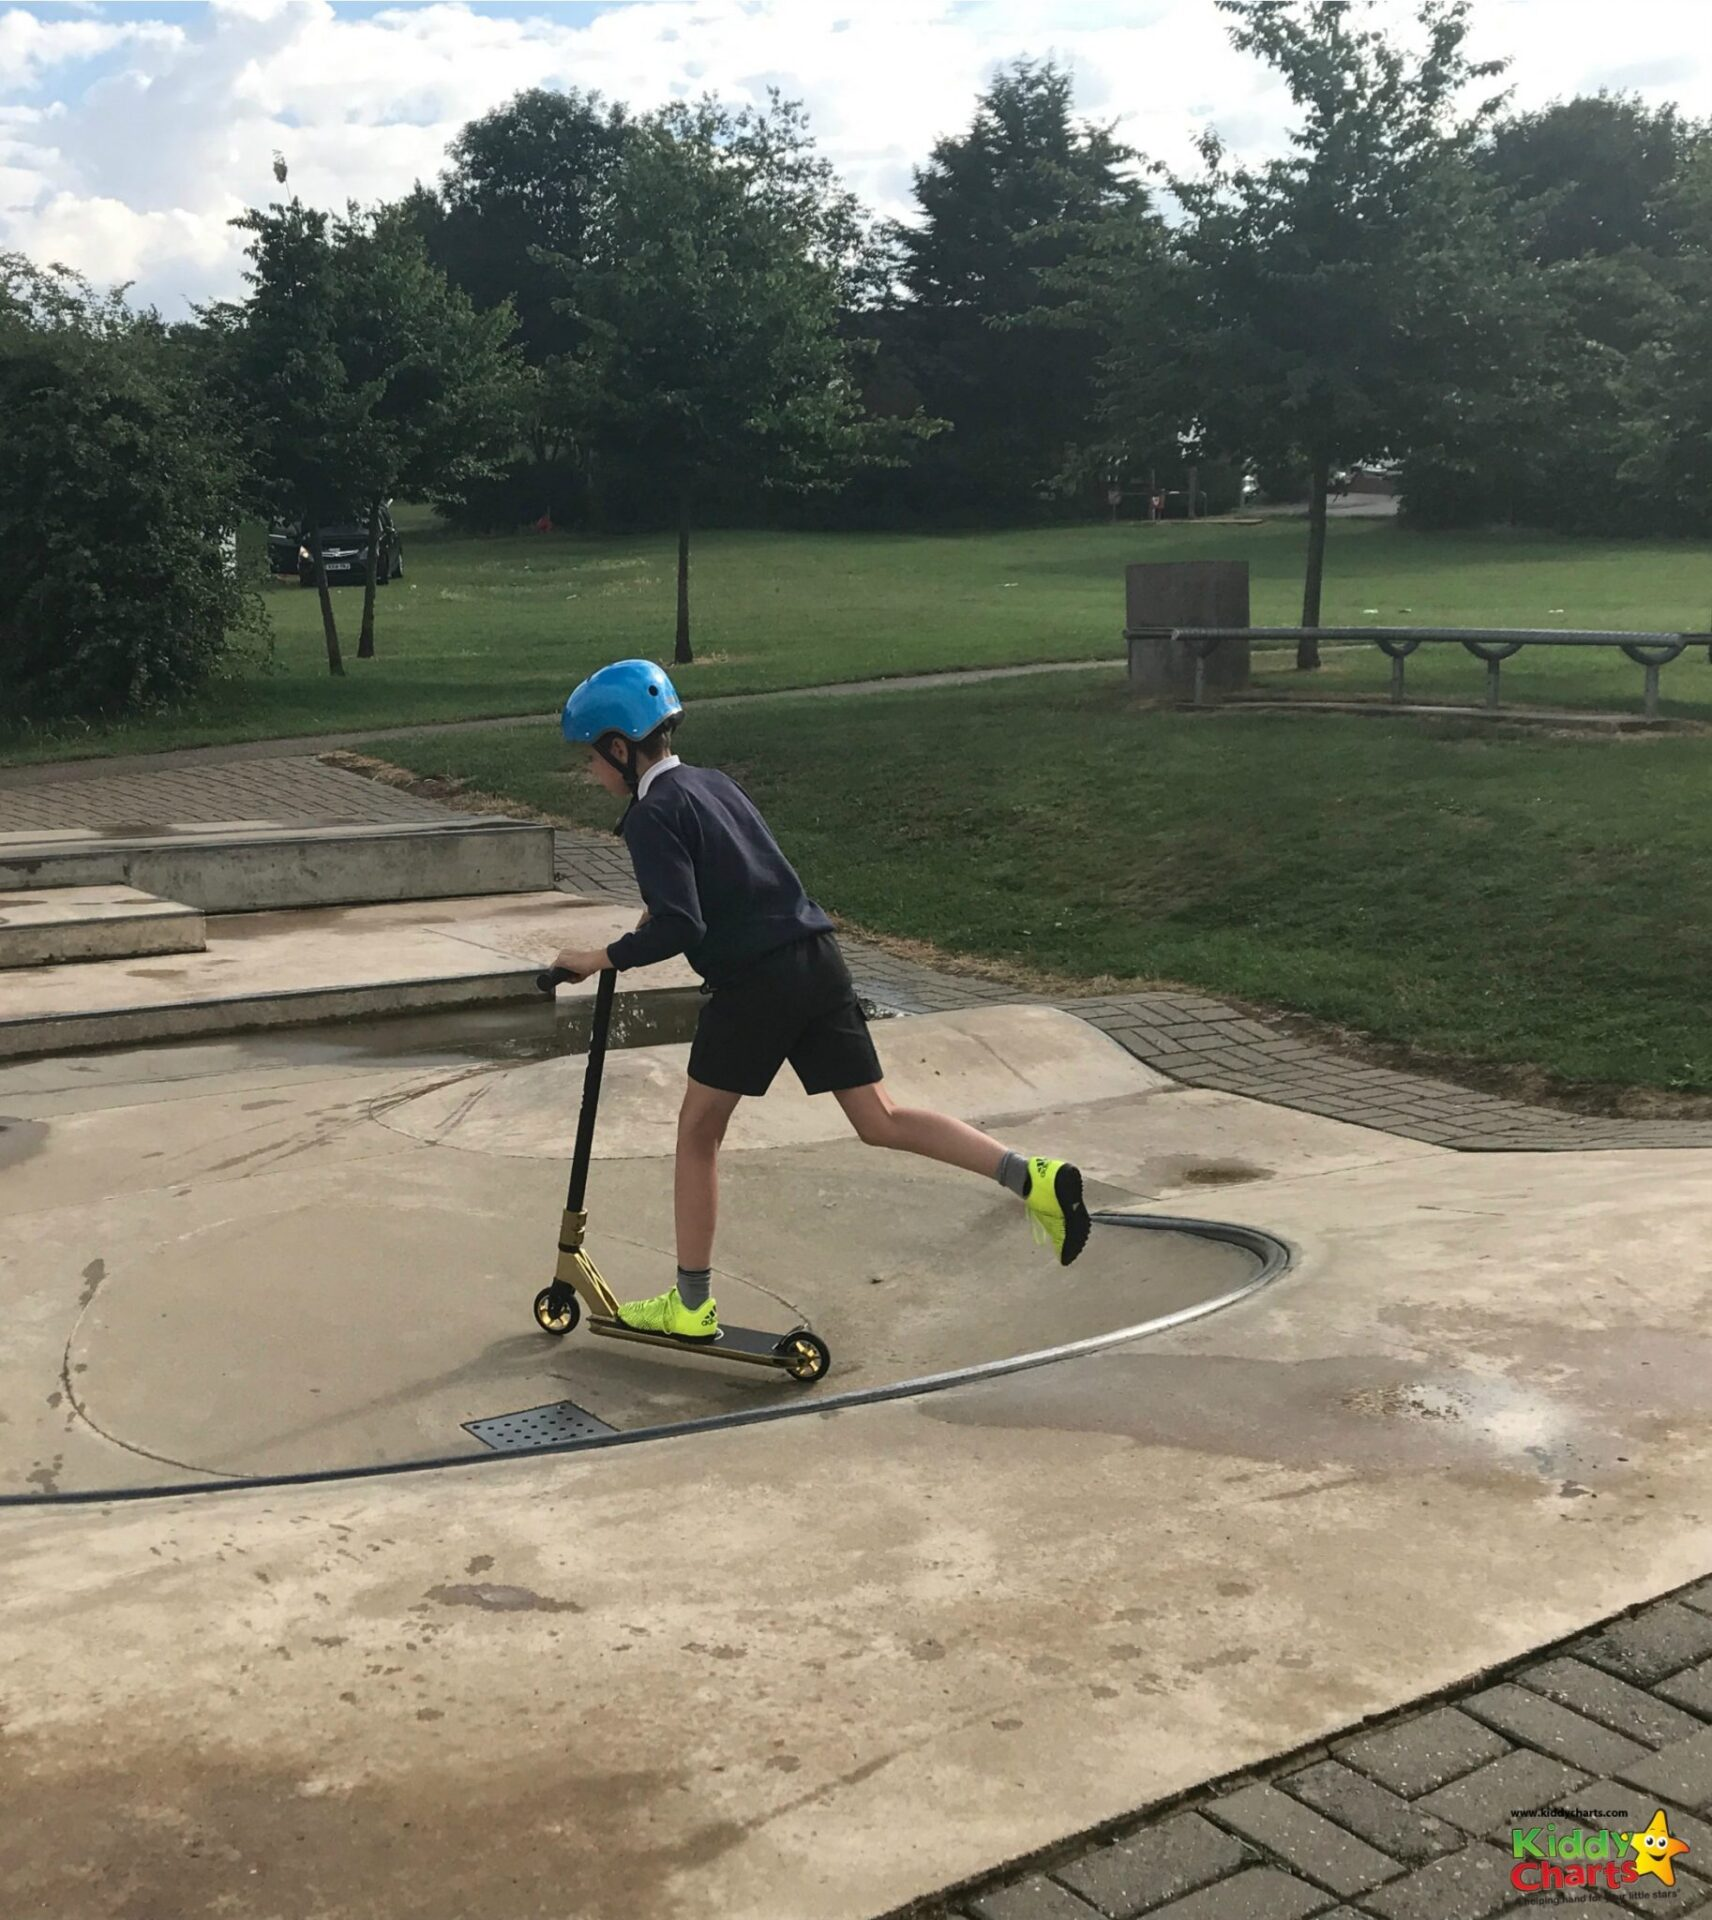 The Microscooter Cross Neck is definitely a good stunt scooter, and could be the best stunt scooter, designed for 12+, but my ten your old seems to be rather enjoying it - why not take a look?